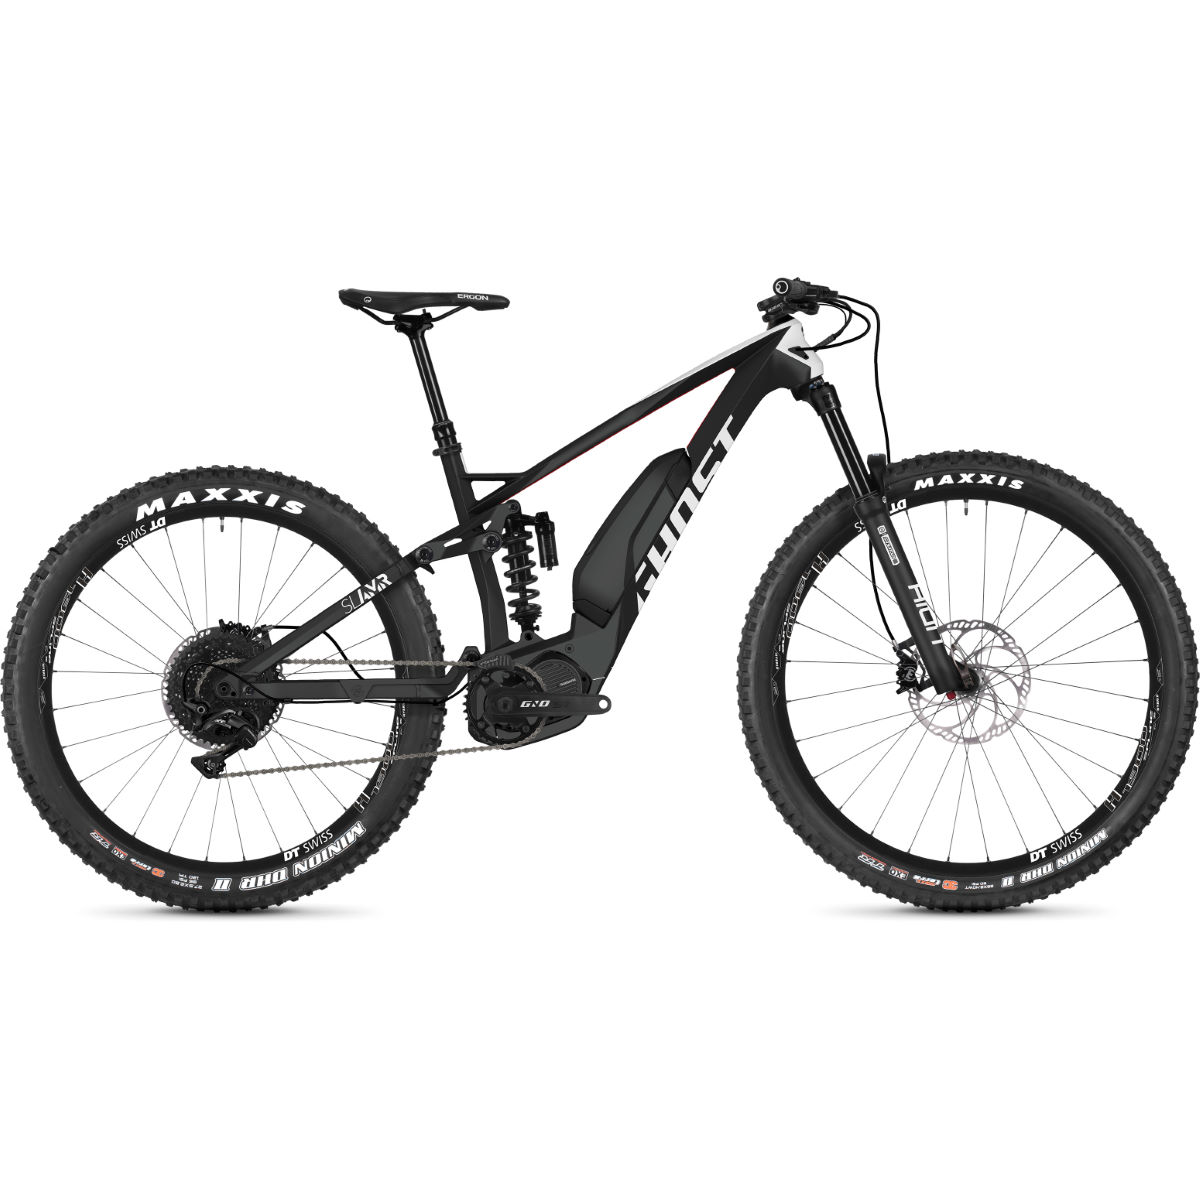 Ghost Slamr S4.7+ Full Suspension E-Bike (2019) - Bicicletas eléctricas de montaña